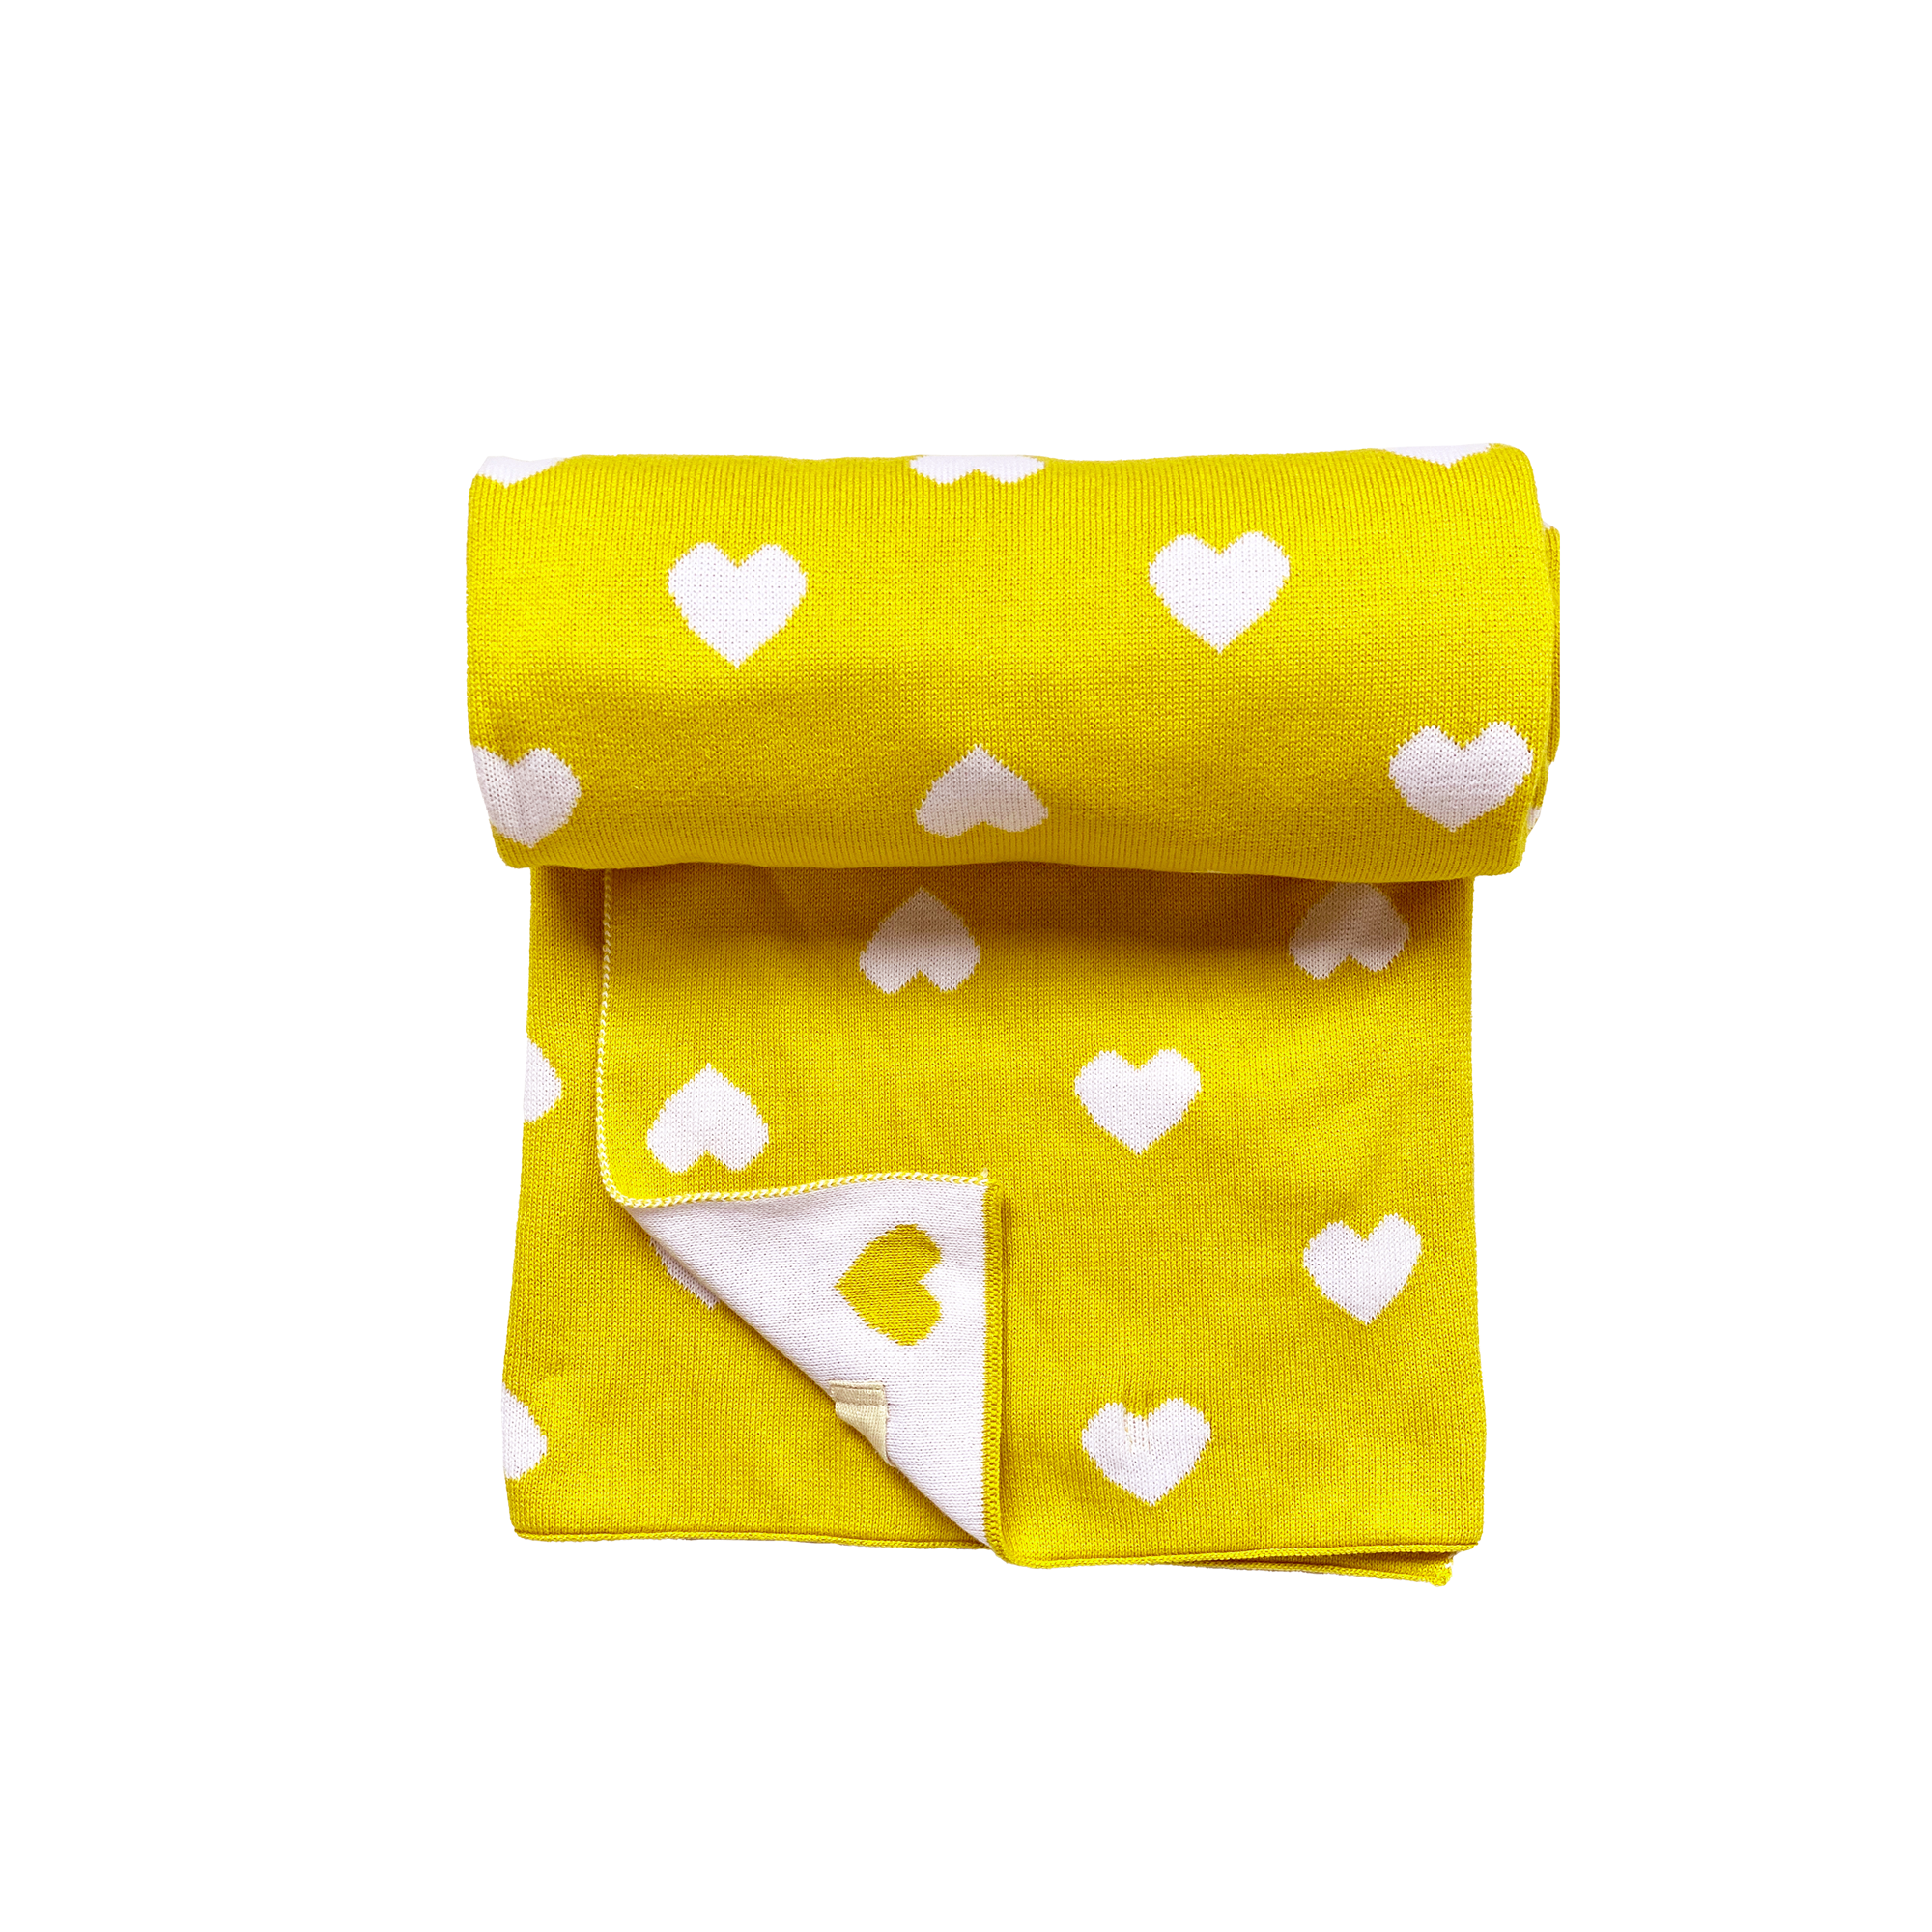 Little hearts yellow and white Knitted baby blanket